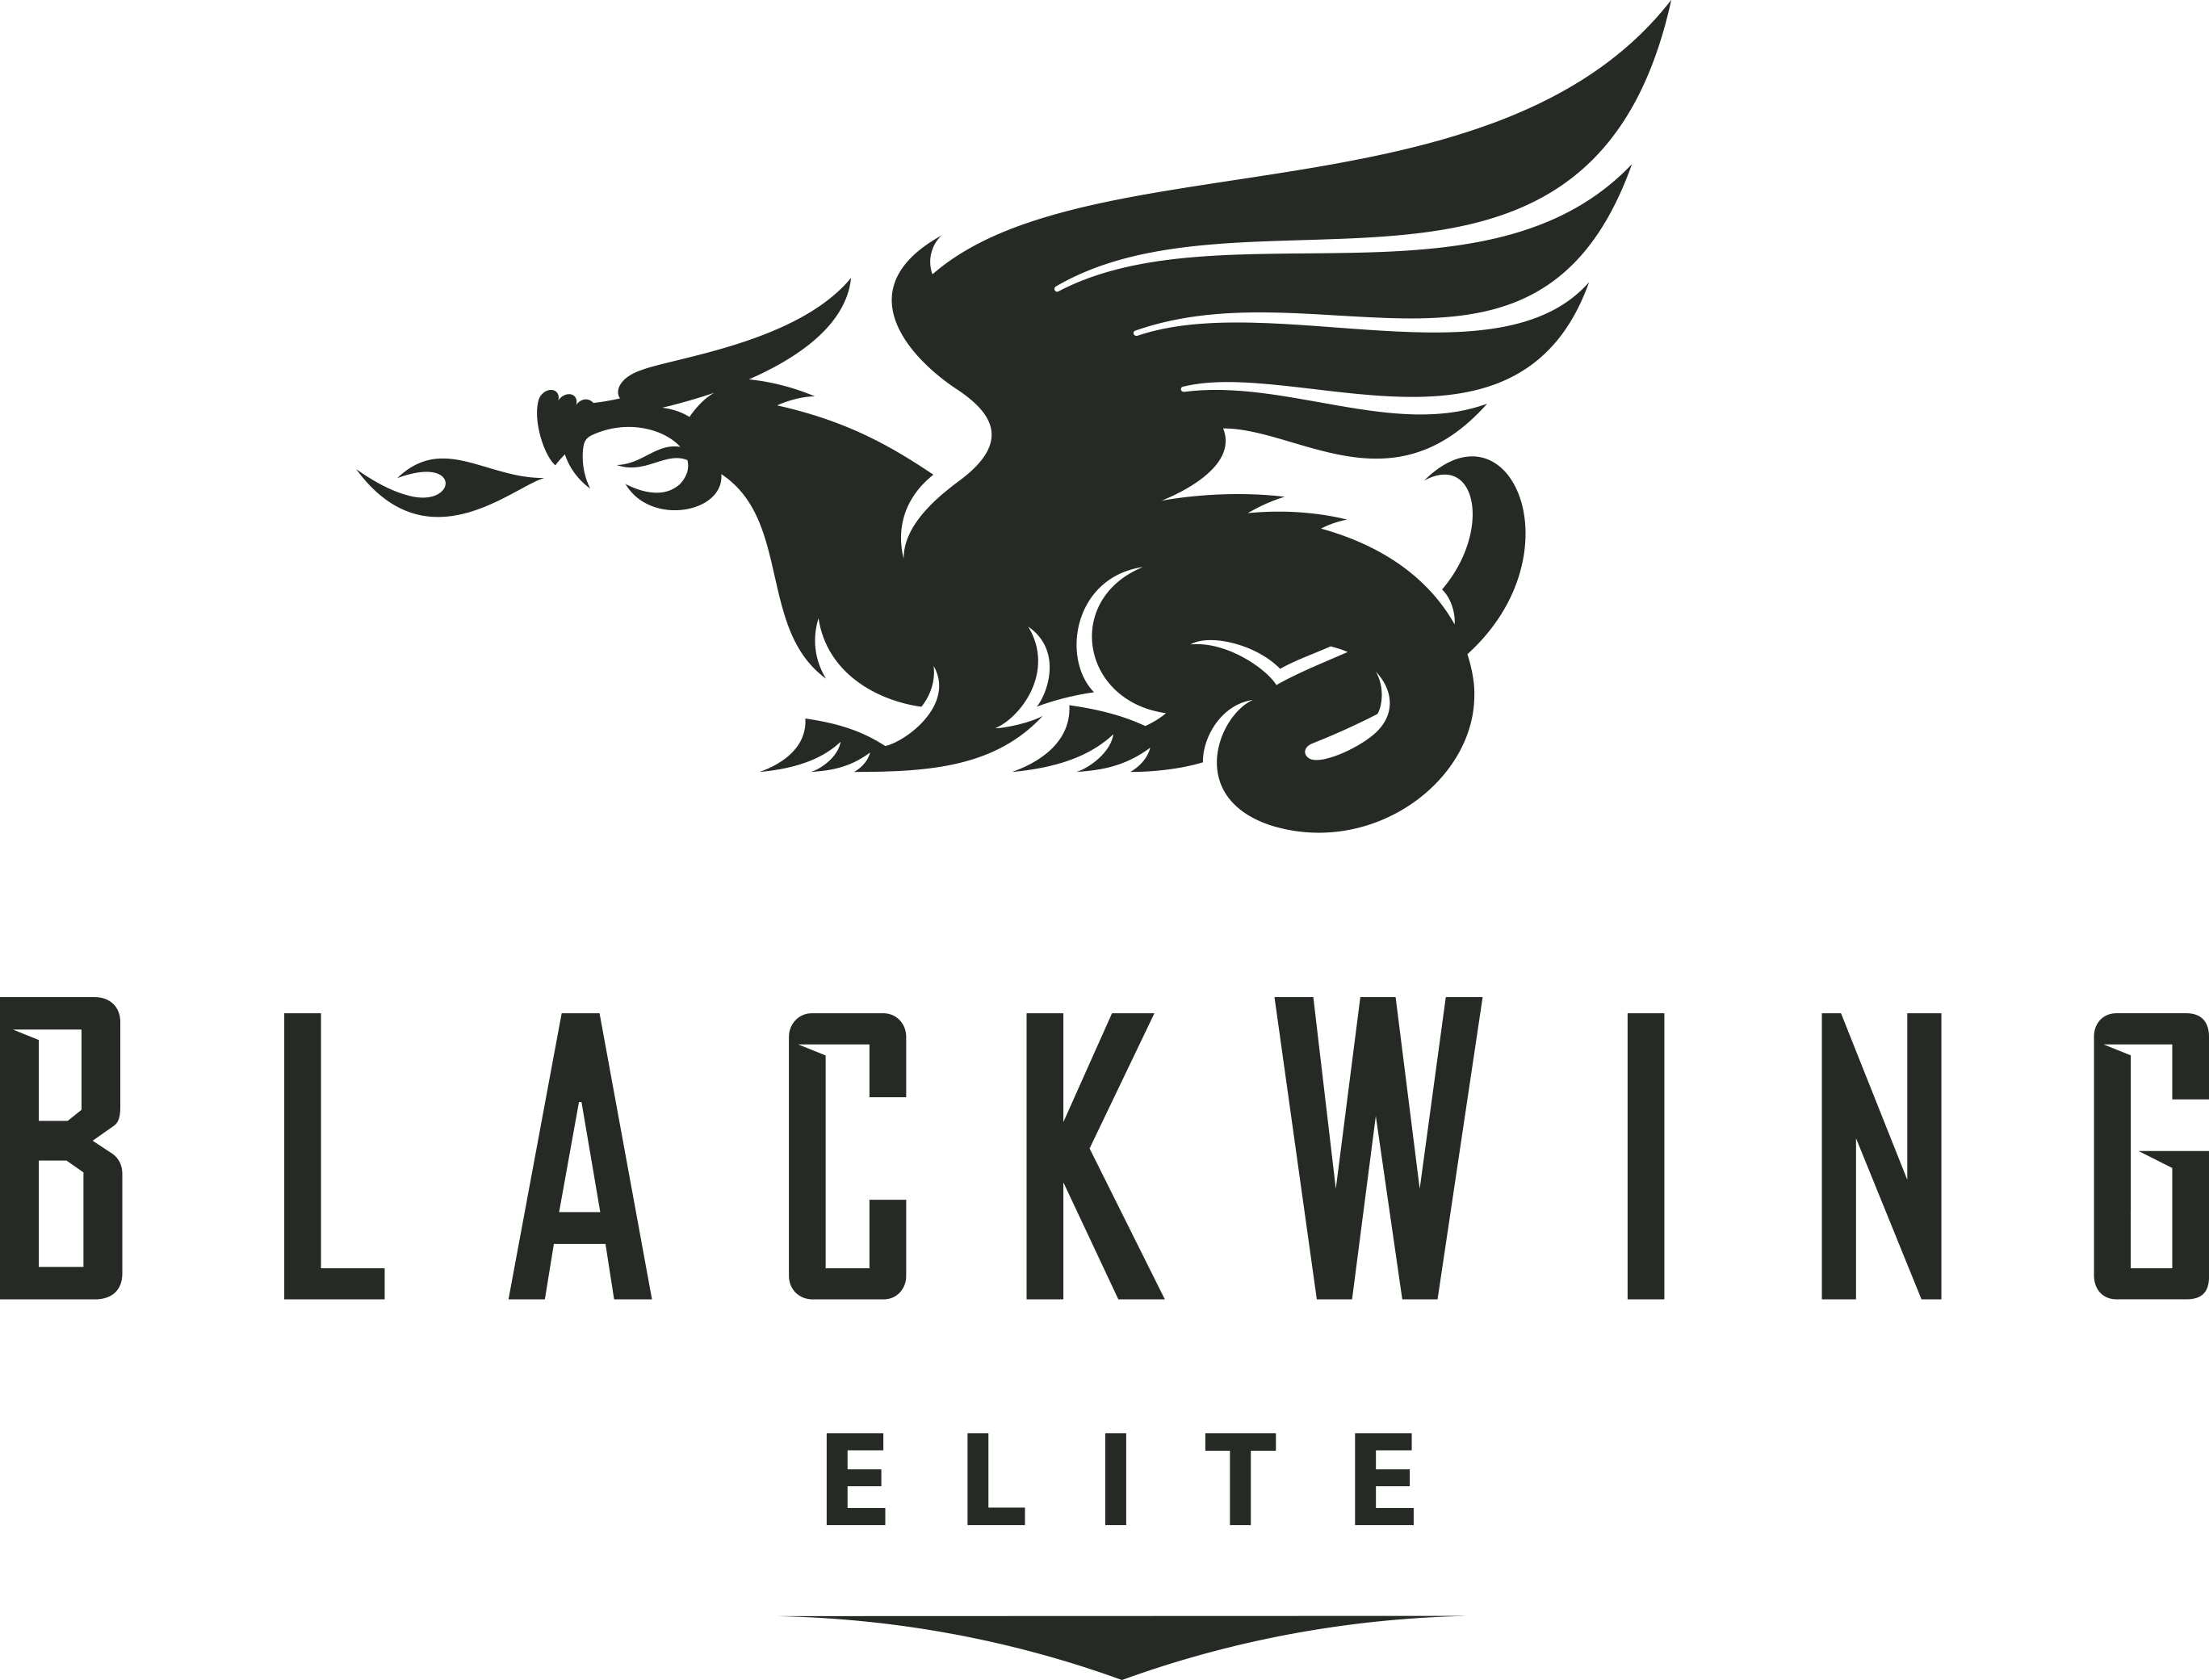 Blackwing Elite